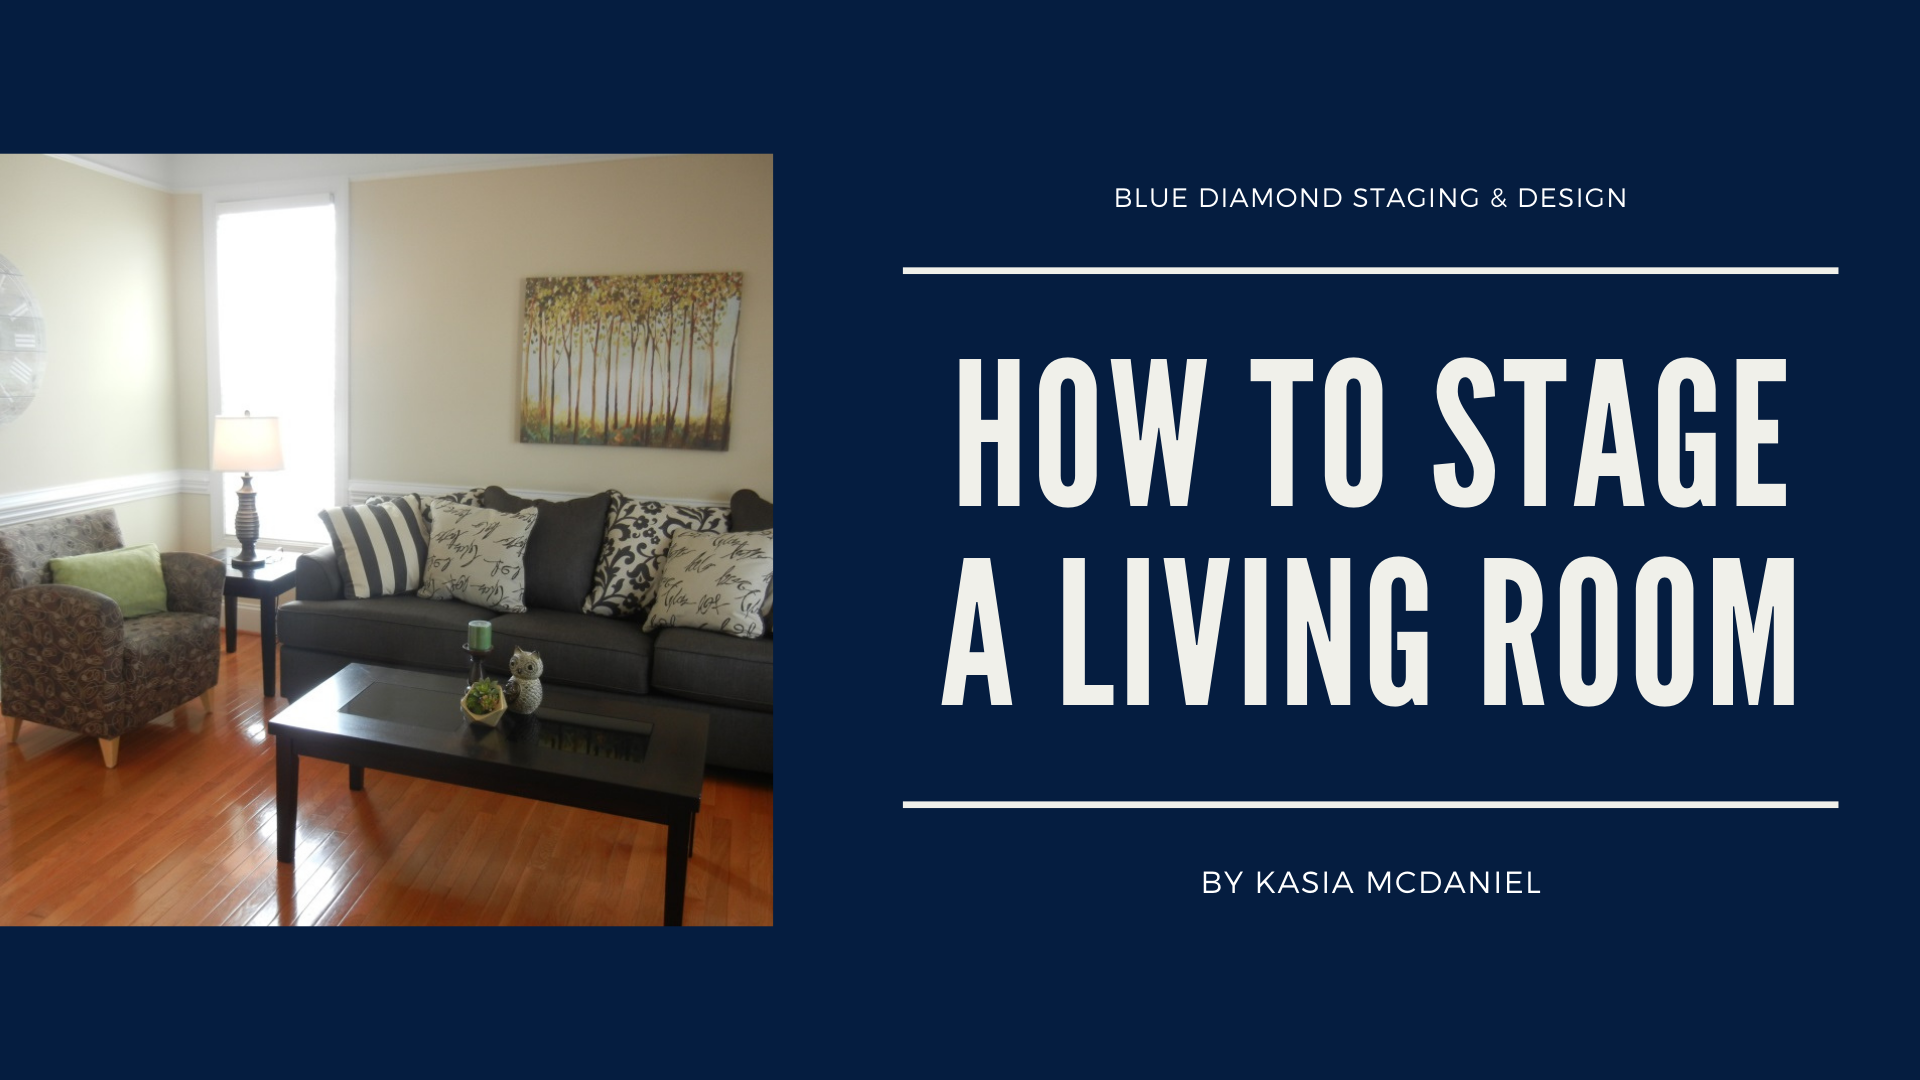 How to Stage a Living Room Course